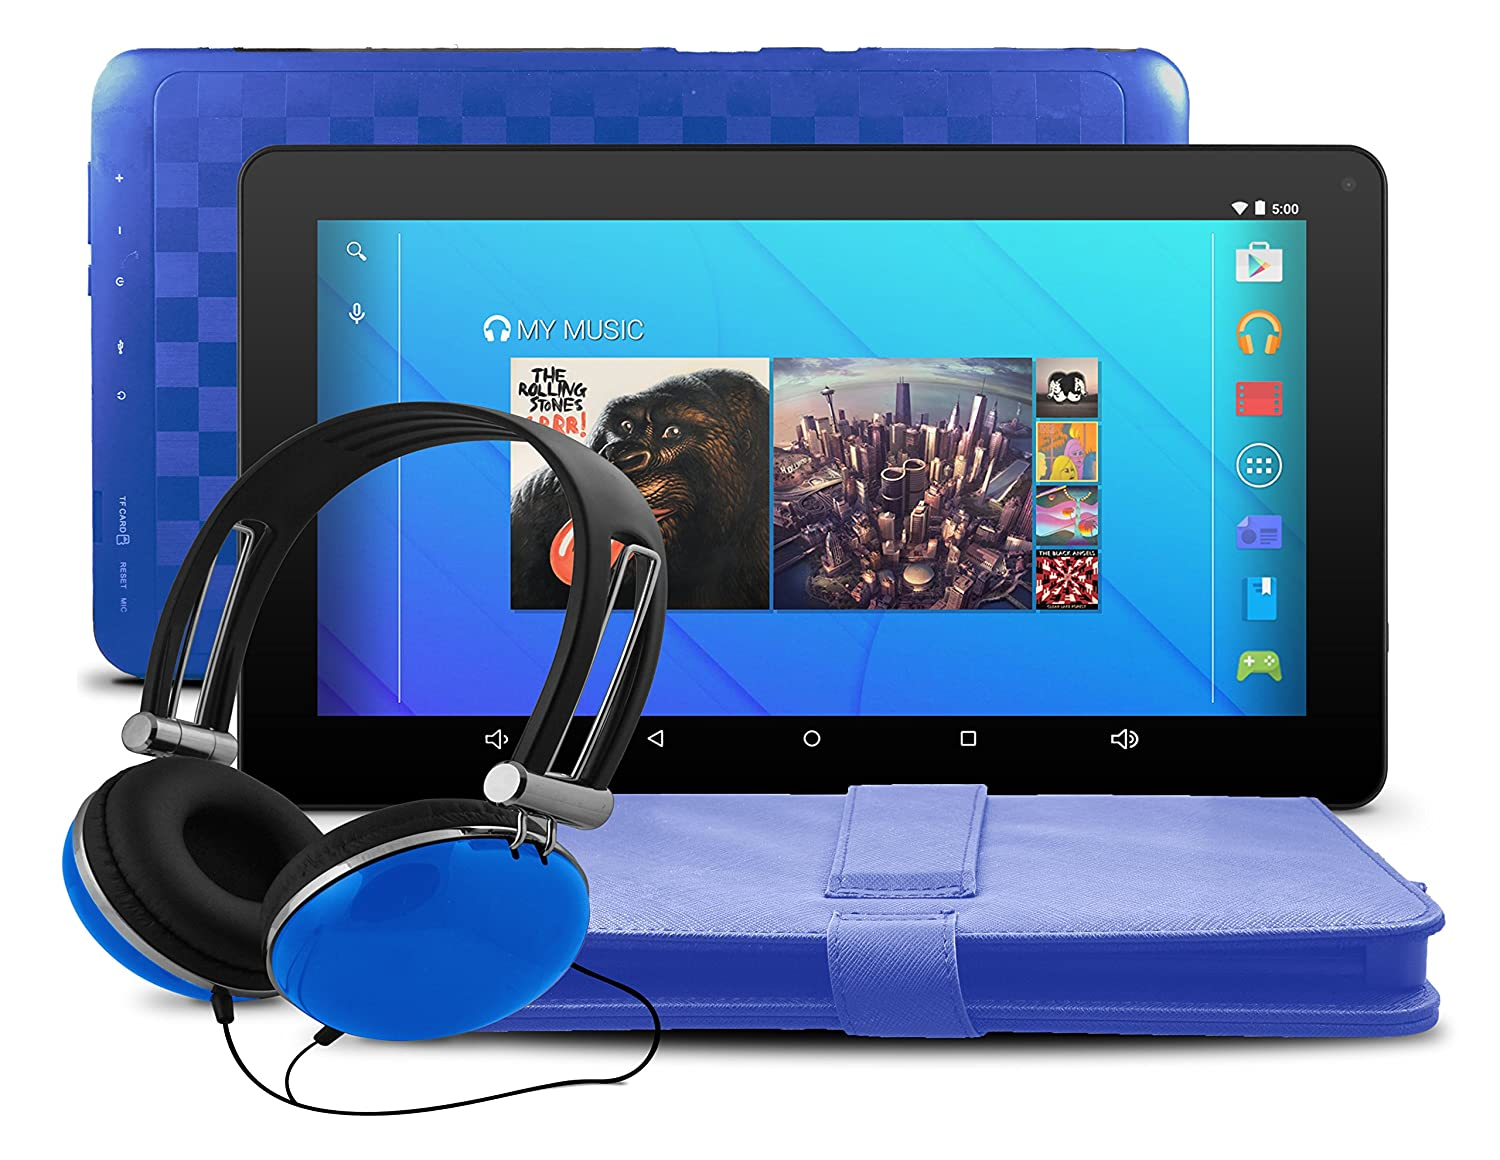 Ematic 10' Android 5.1 (Lollipop), Quad-Core 16GB Tablet with Keyboard Folio Case and Headphones, Blue EGQ223SKBU